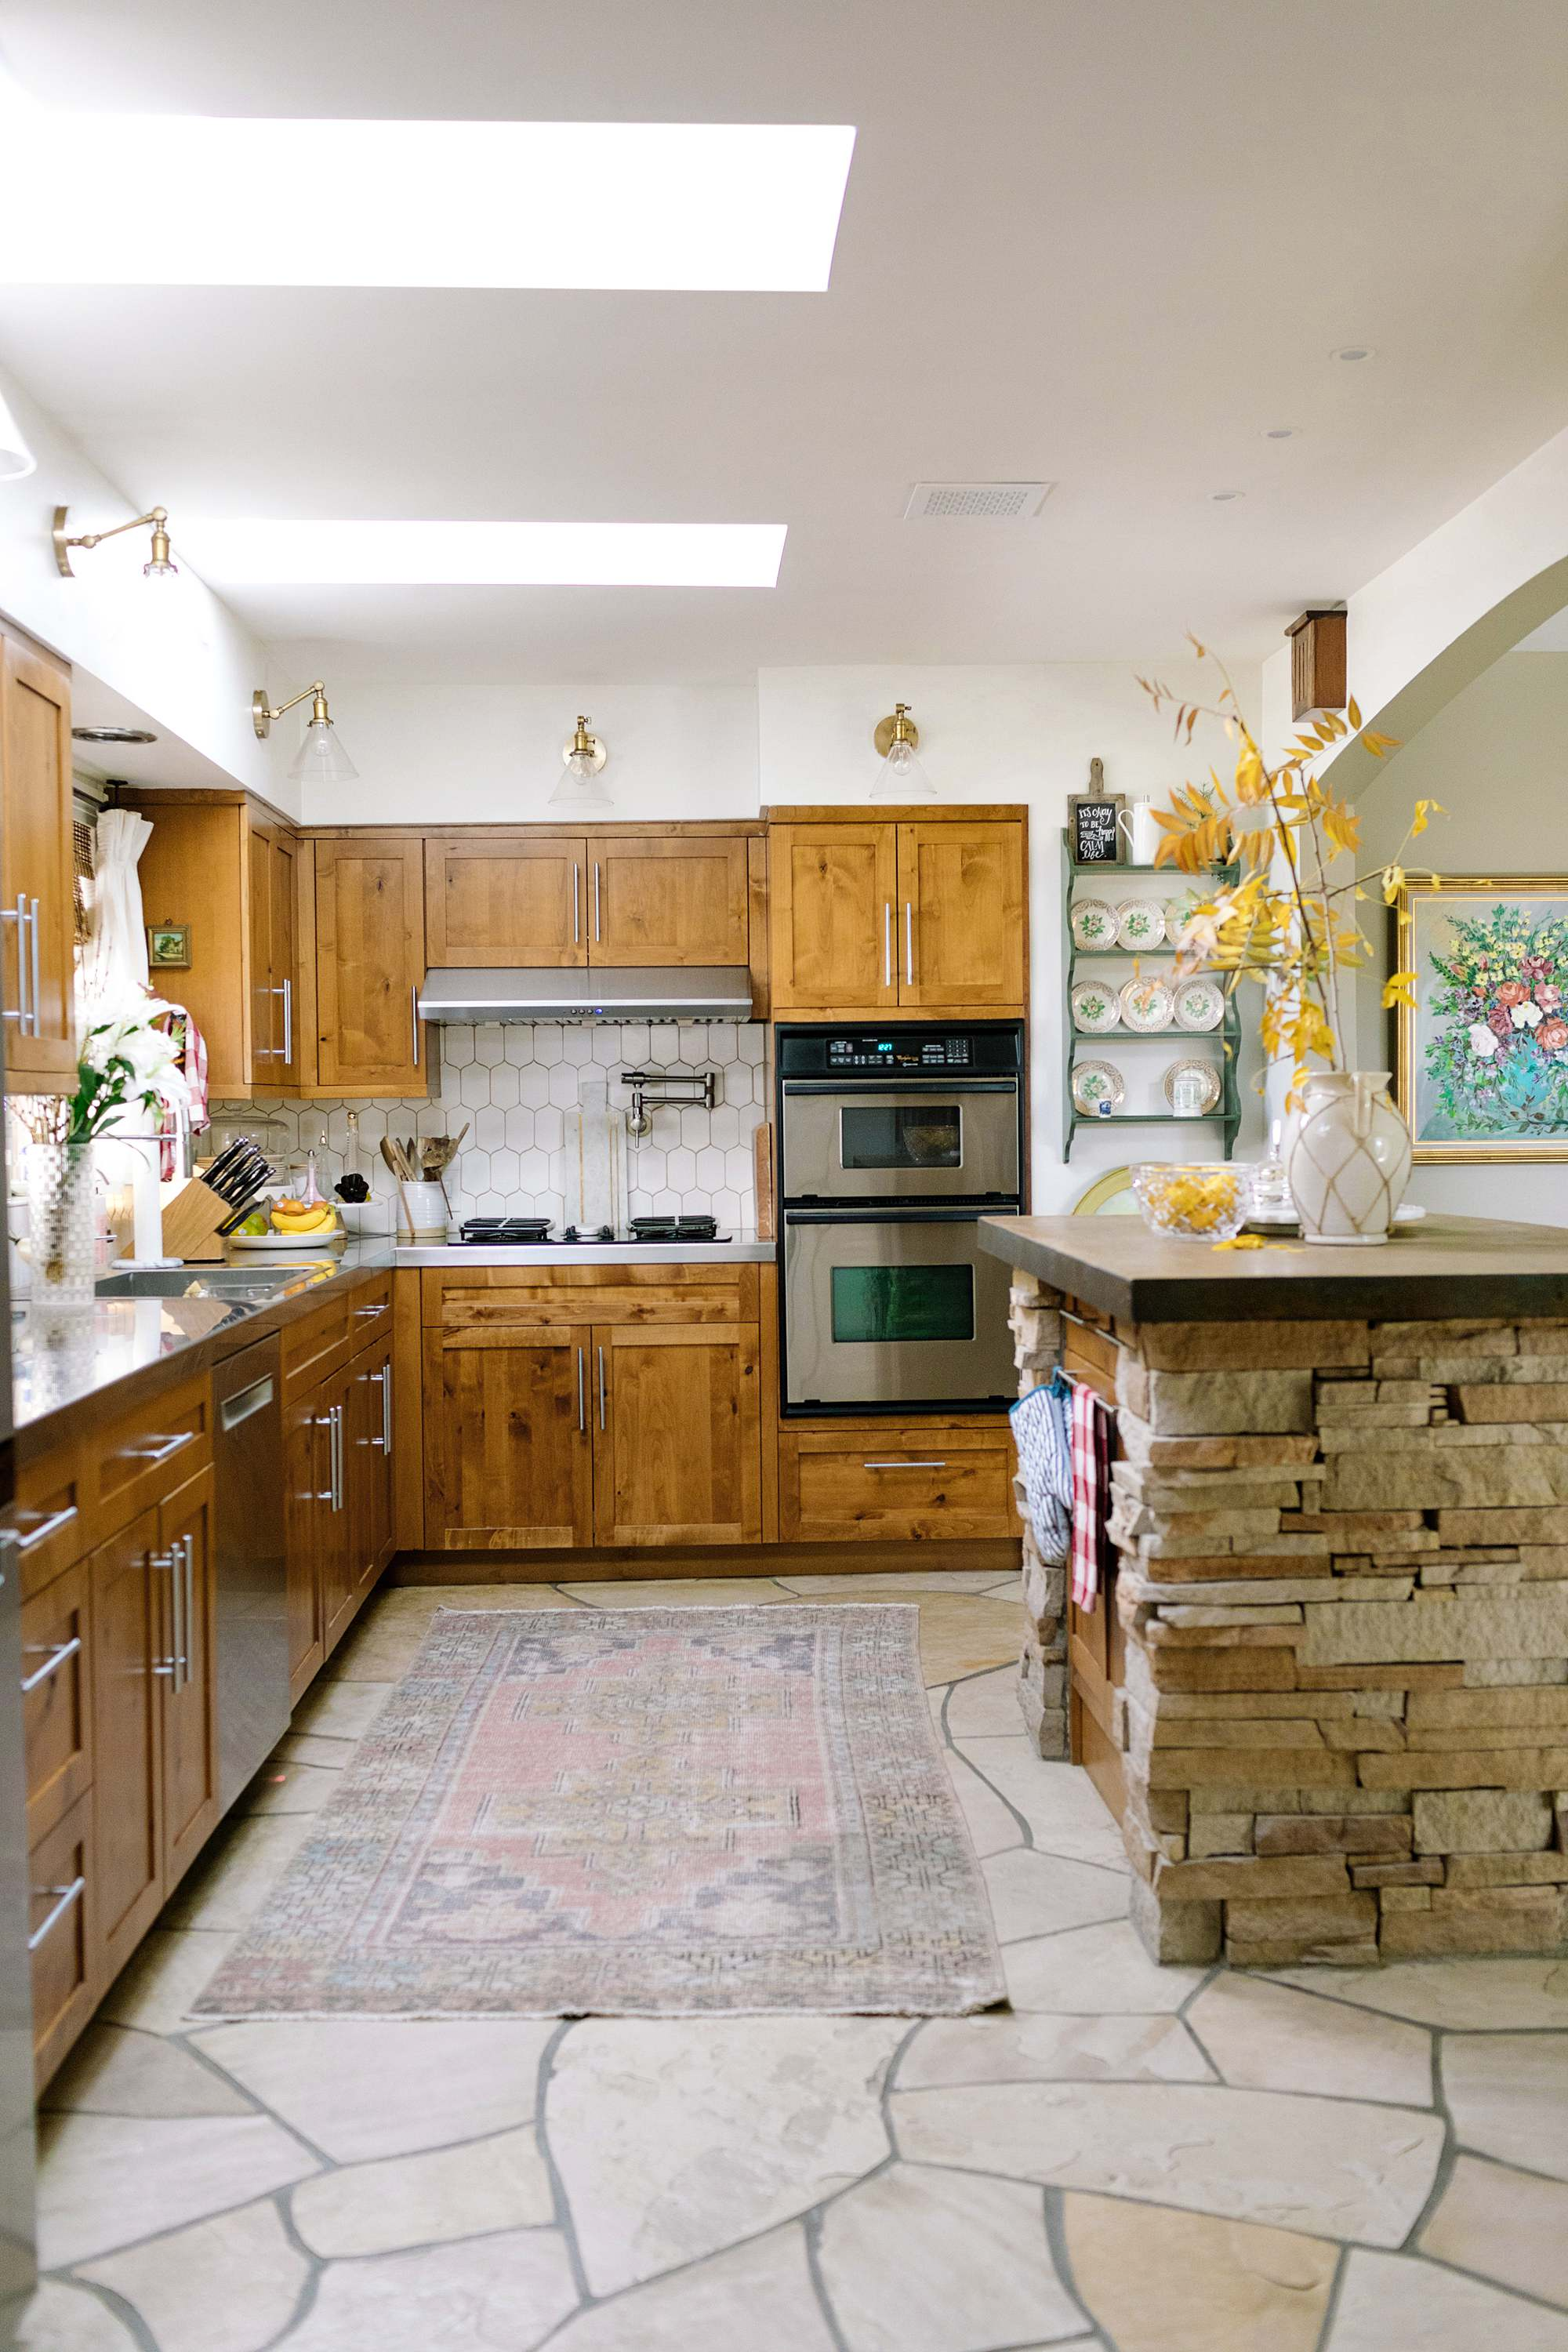 kitchen wall sconces clear glass flagstone floors, natural wood stained cabinets shaker style